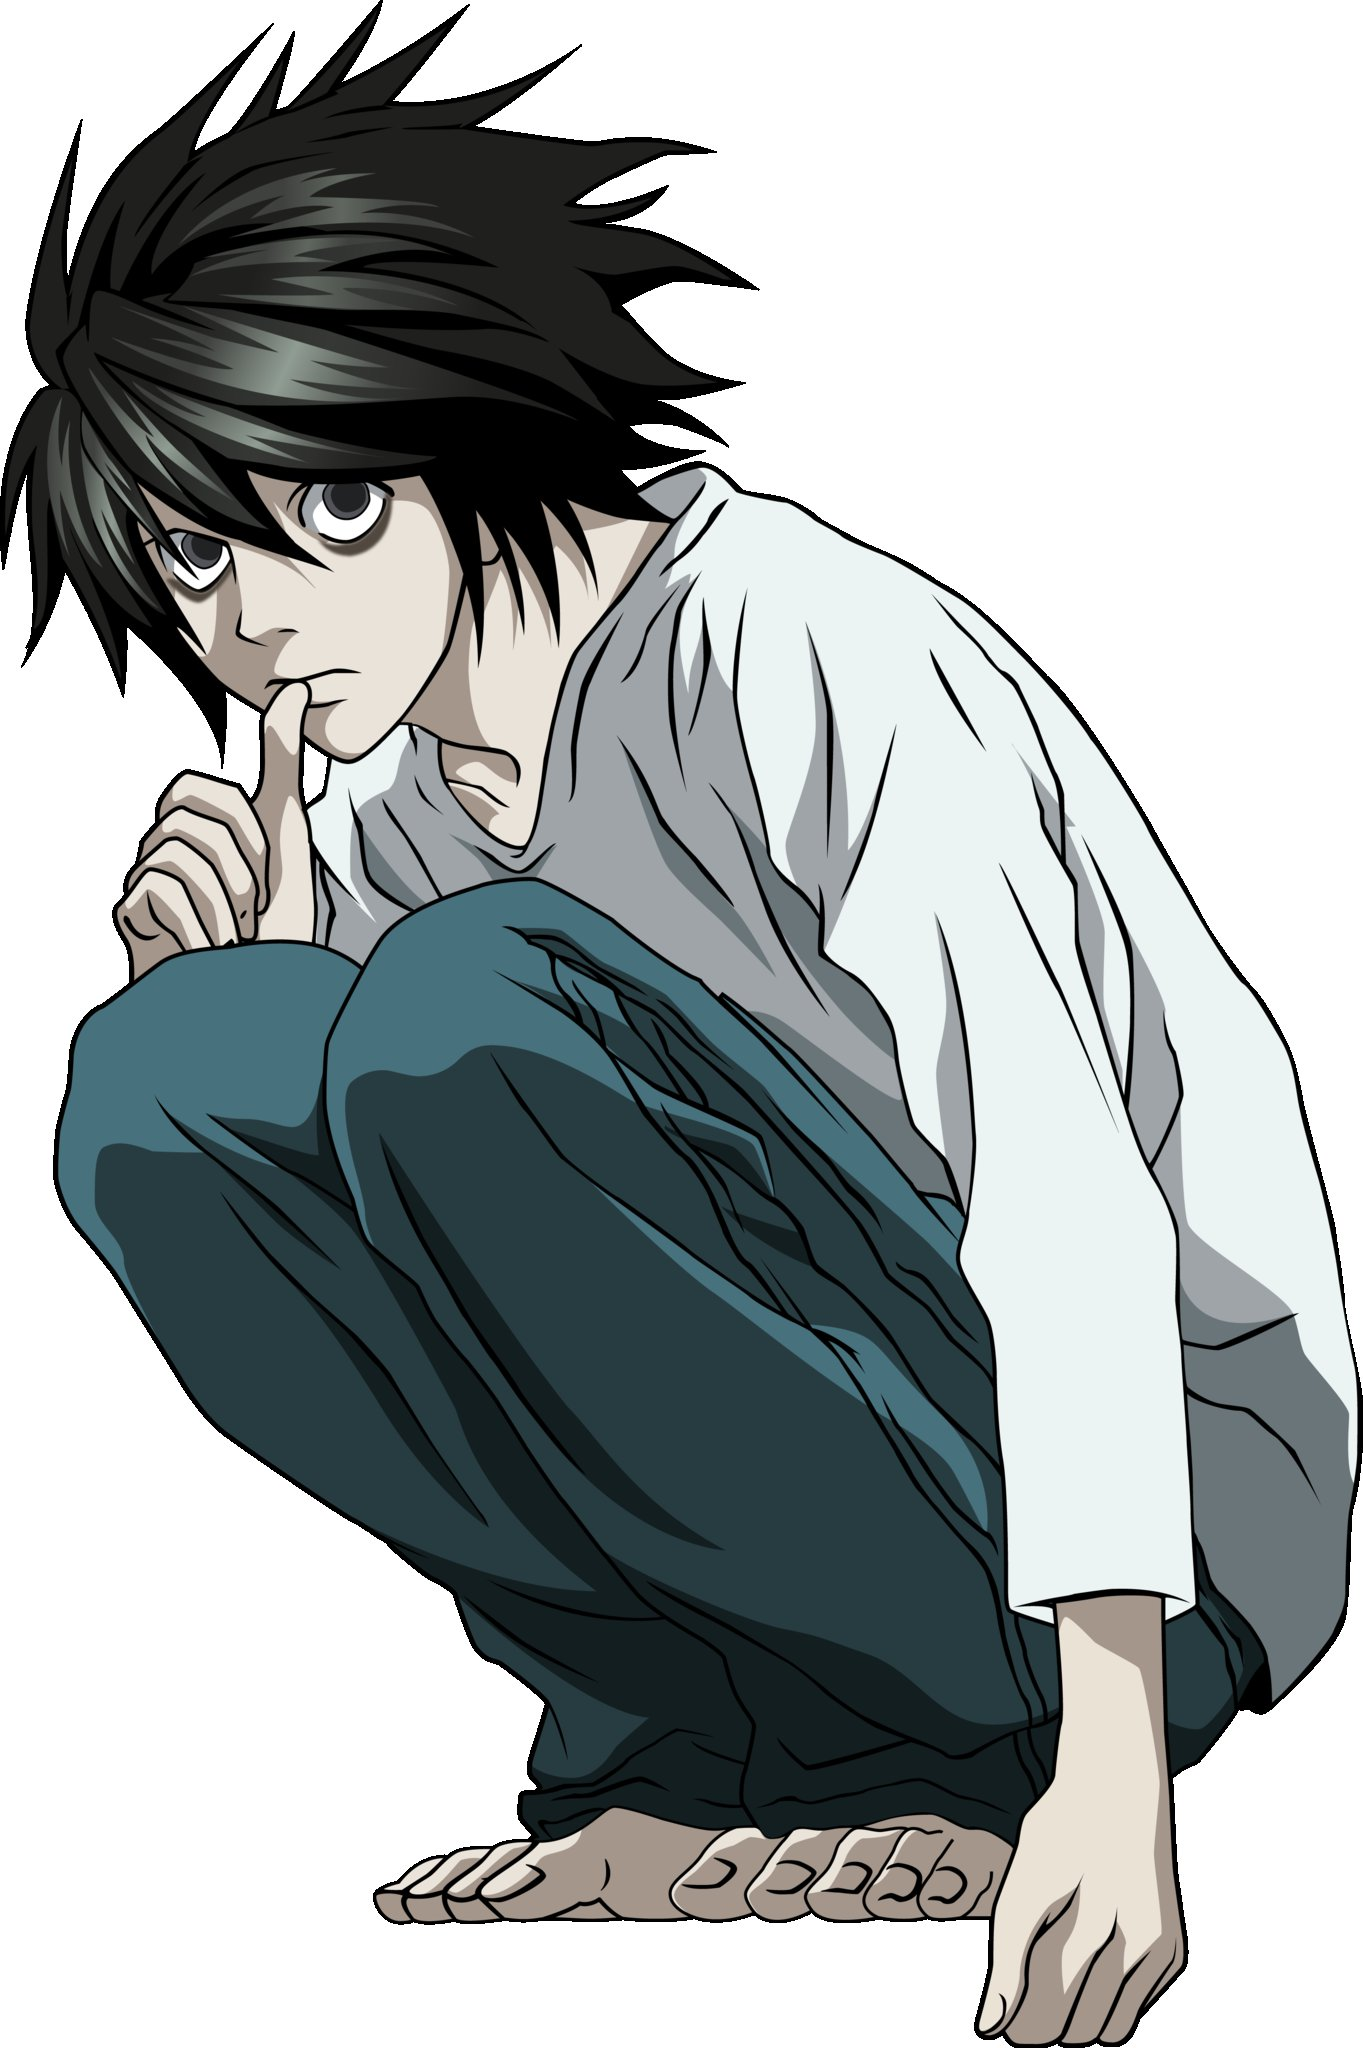 Chibi L from Death Note | Anime | Pinterest | Death note, Chibi ...